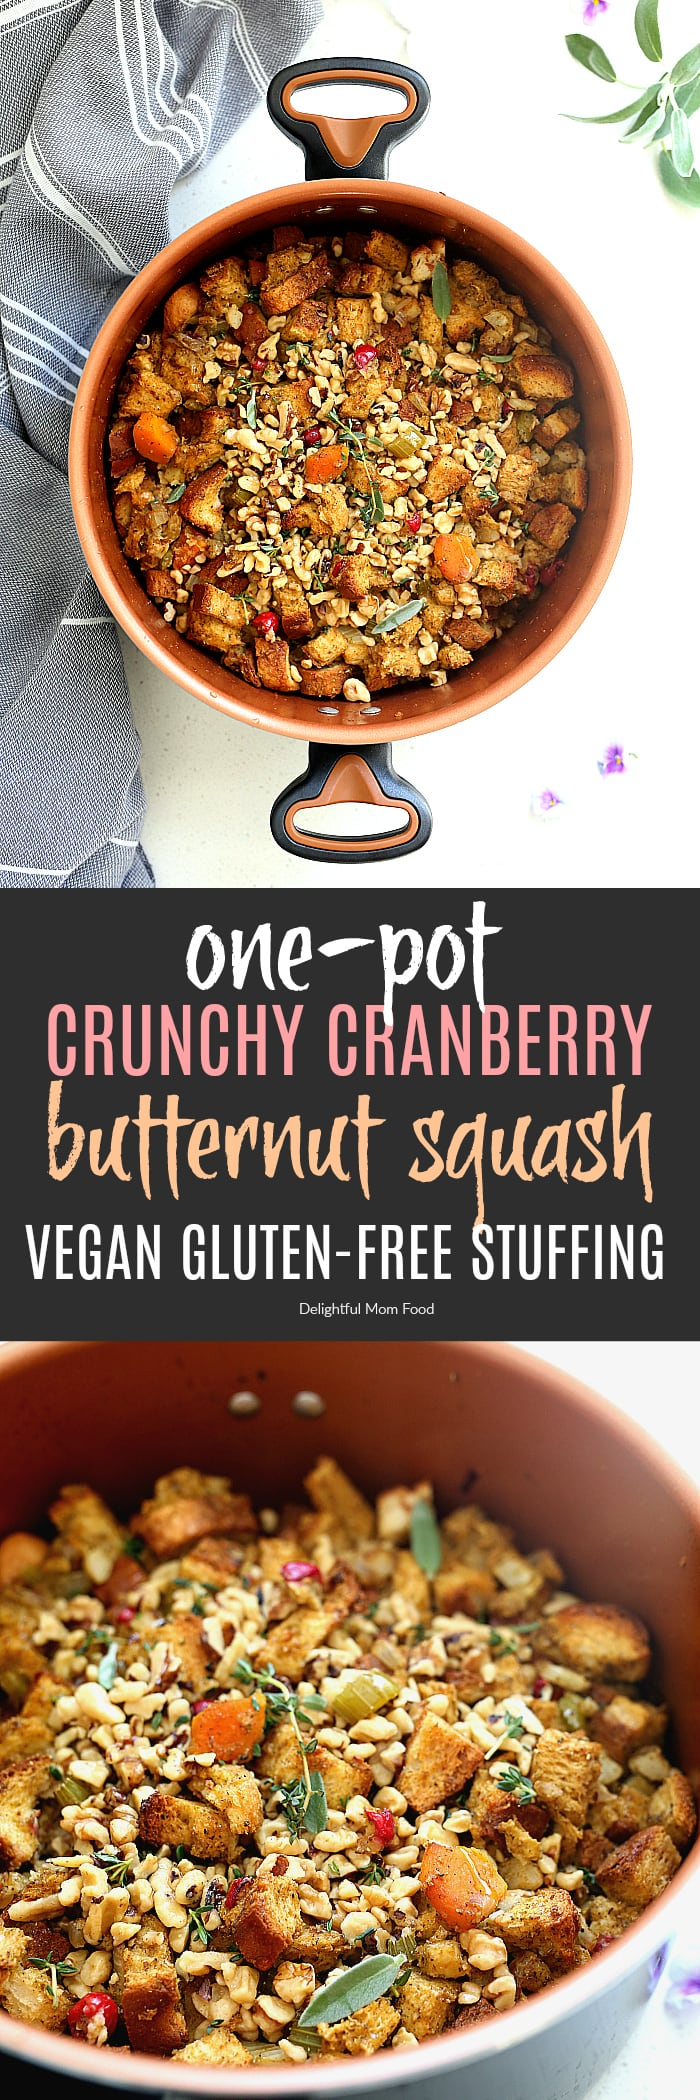 Crunchy water chestnuts make this gluten-free stuffing recipe the talk of the town! It is full of comforting fall flavors of cranberry and butternut squash and is easily sautéed and baked in a dutch oven for little clean-up! #farberware #stuffing #recipe #ad #easy #onepot #onepan #glutenfree #Farberwarecookware #Farberwareglide | delightfulmomfood.com